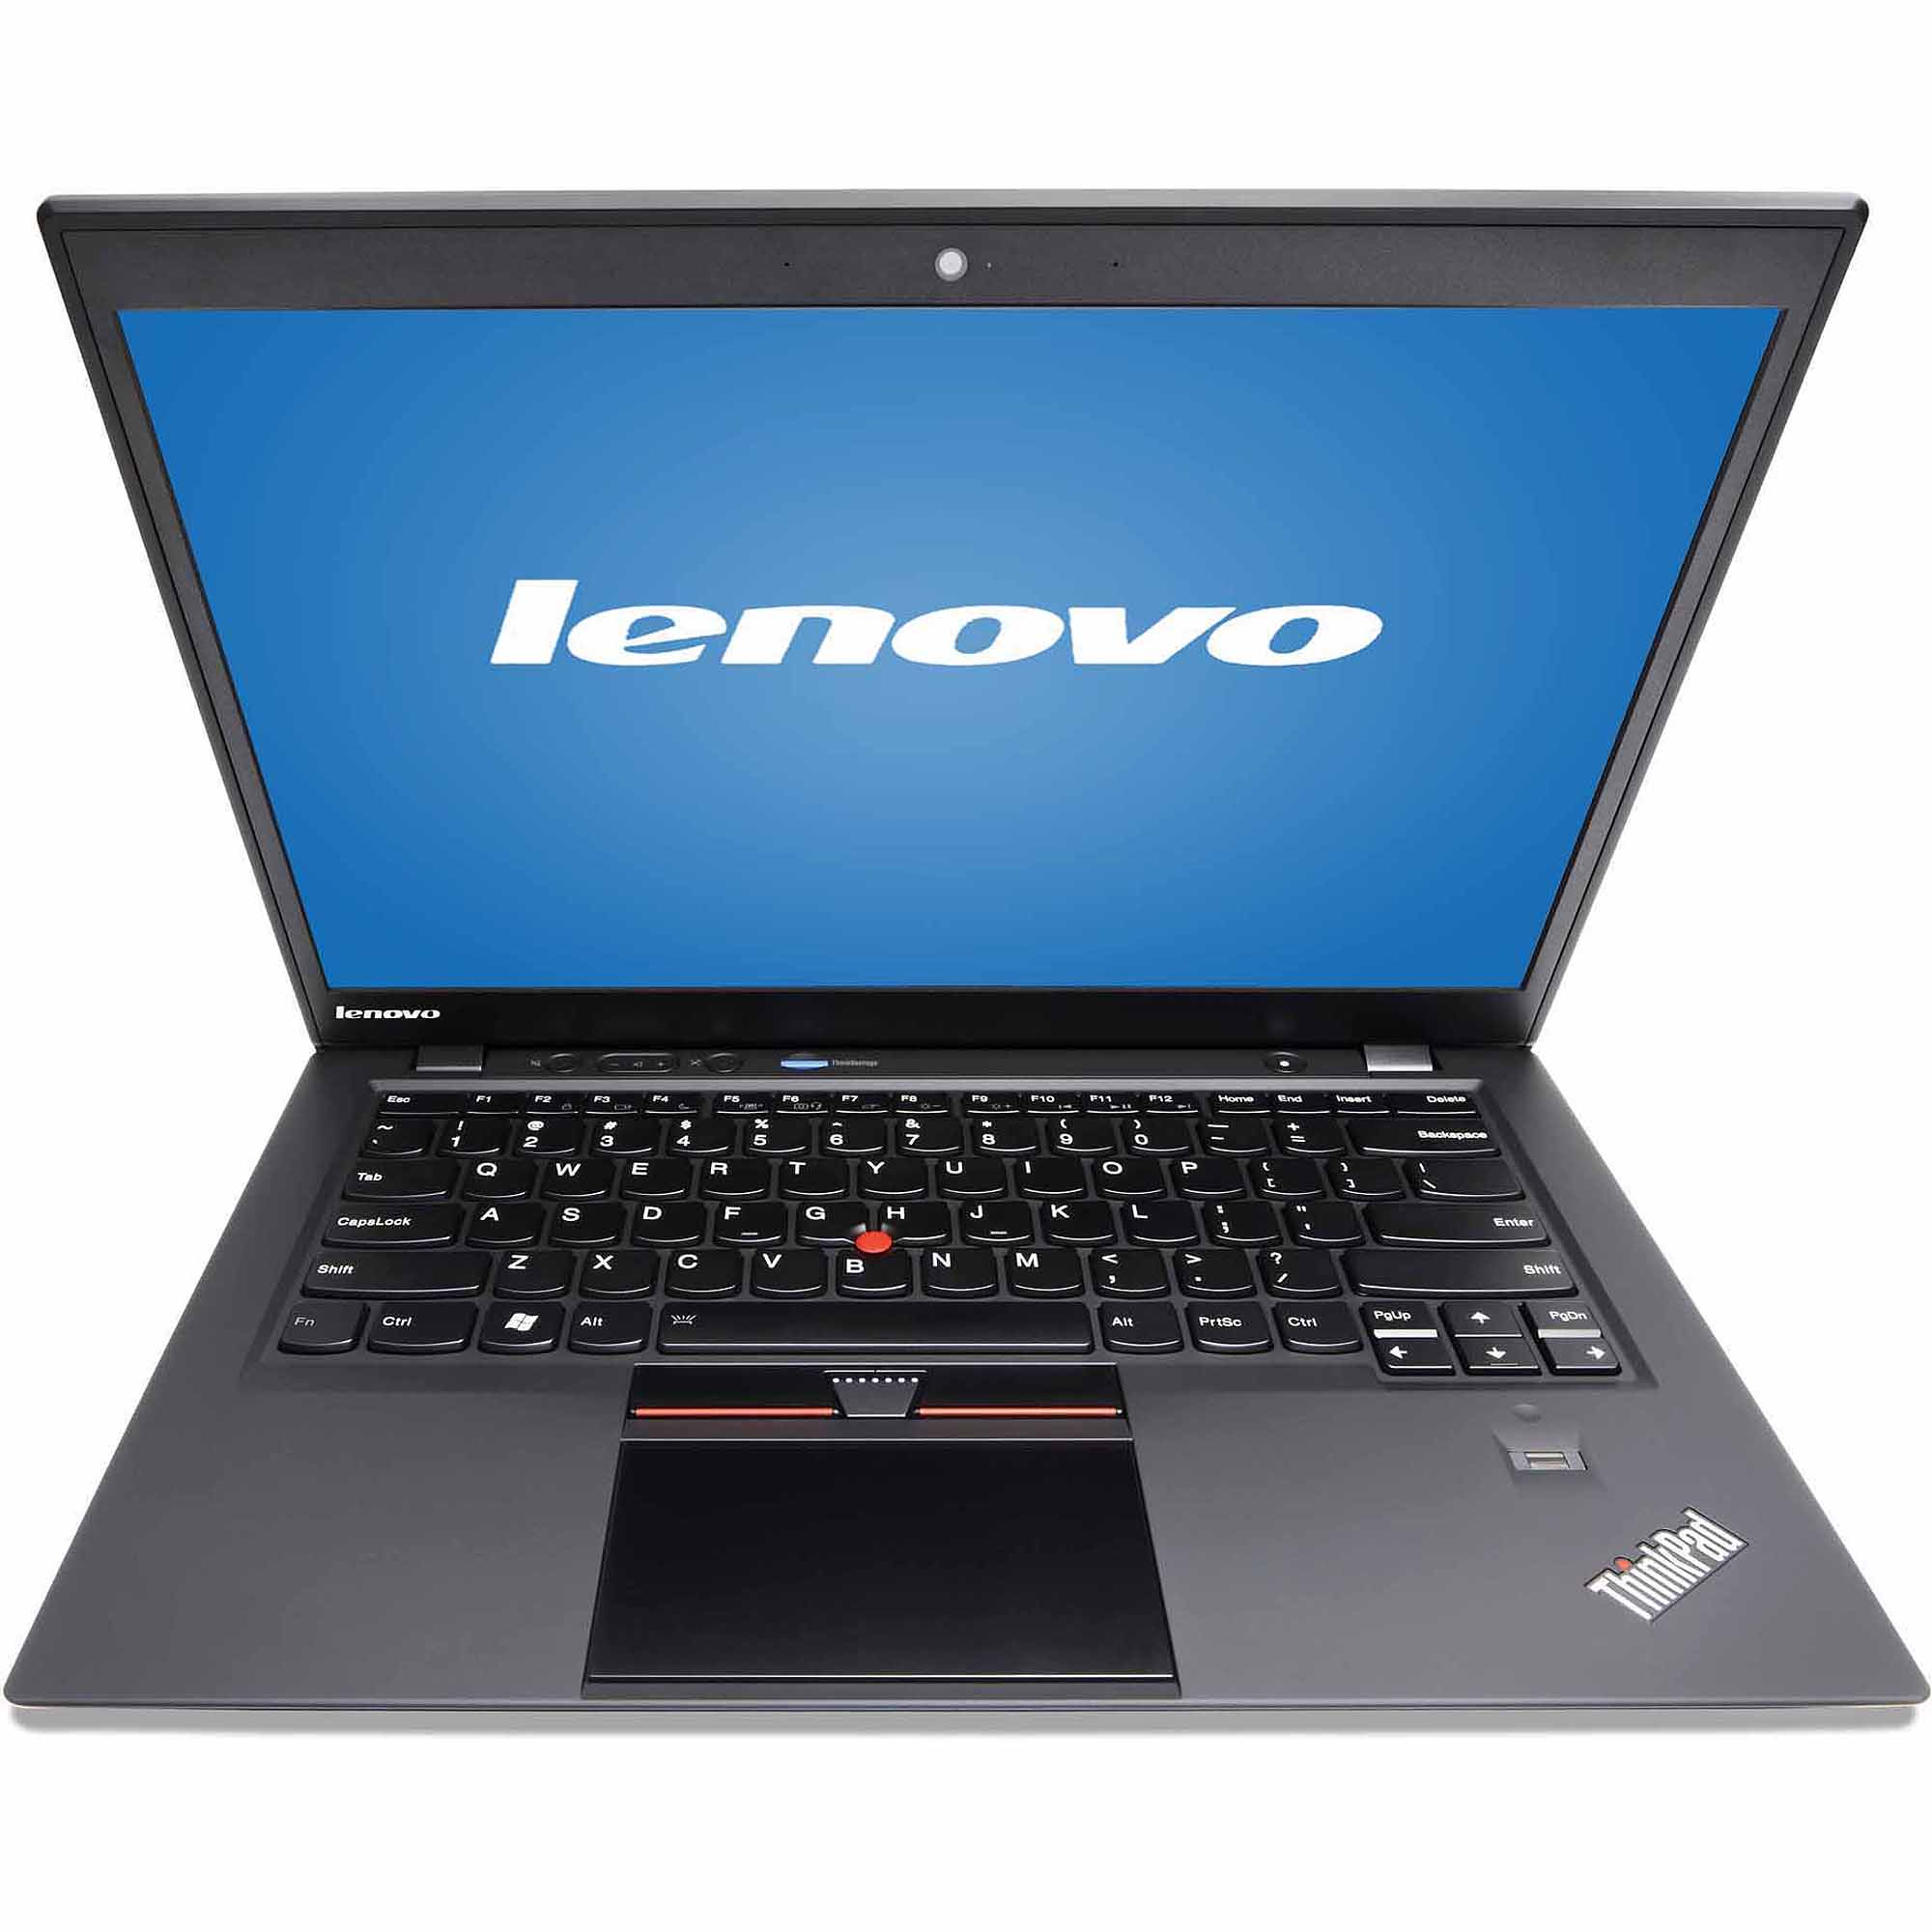 "Lenovo Black 14"" ThinkPad X1 Laptop PC with Intel Core i7-4600U Dual-Core Processors, 8GB Memory, Touchscreen, 256GB SSD and Windows 8.1 Pro"